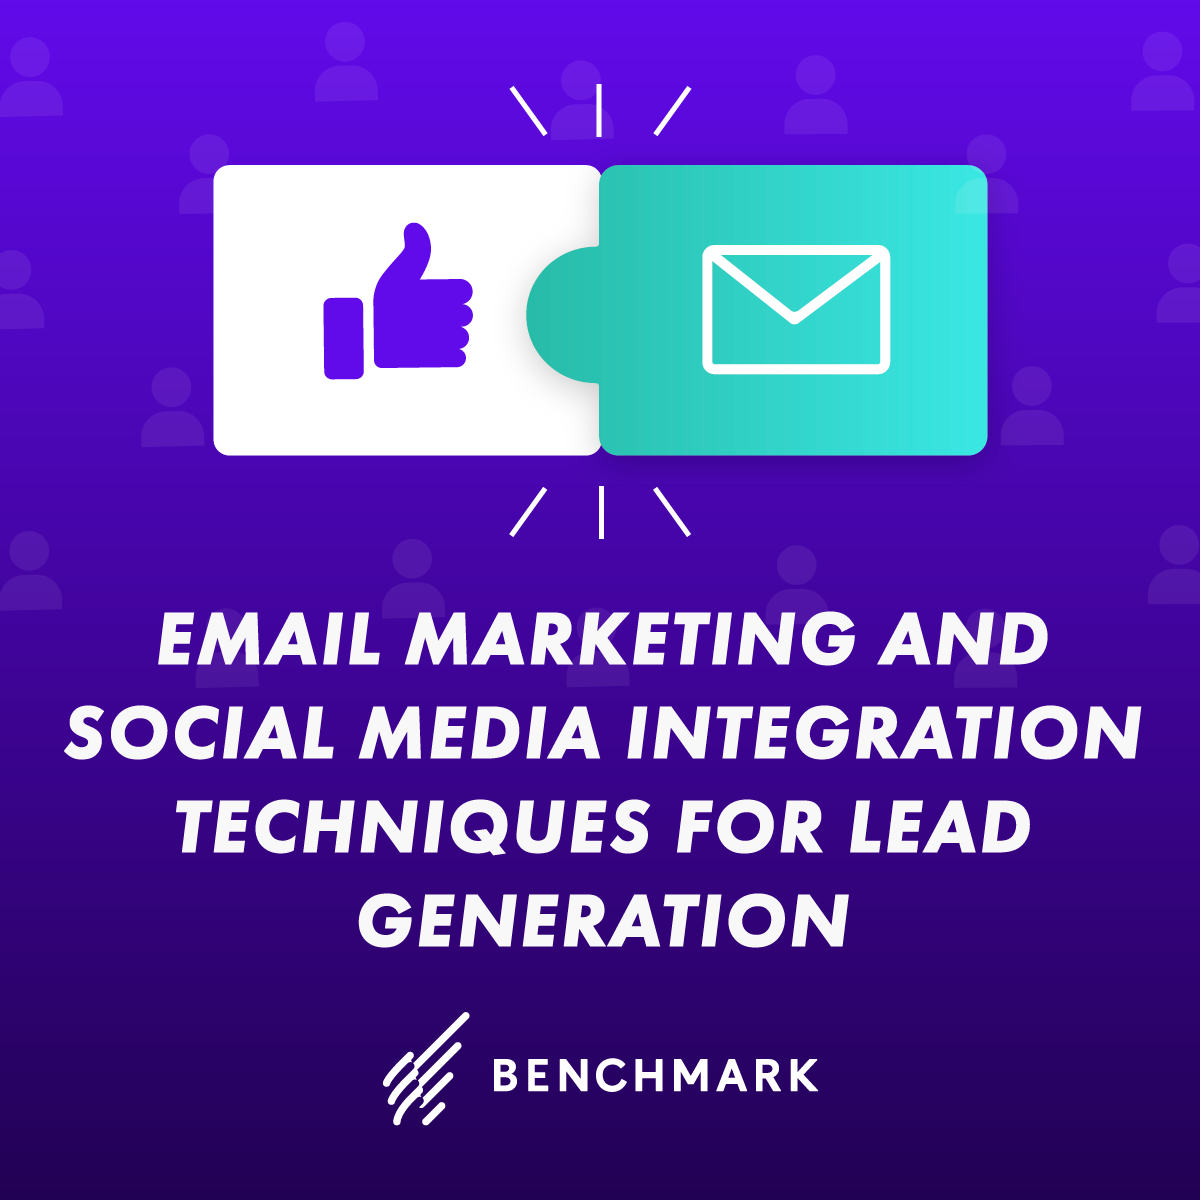 5 Ways to Use Email Marketing and Social Media Integration Techniques for Lead Generation